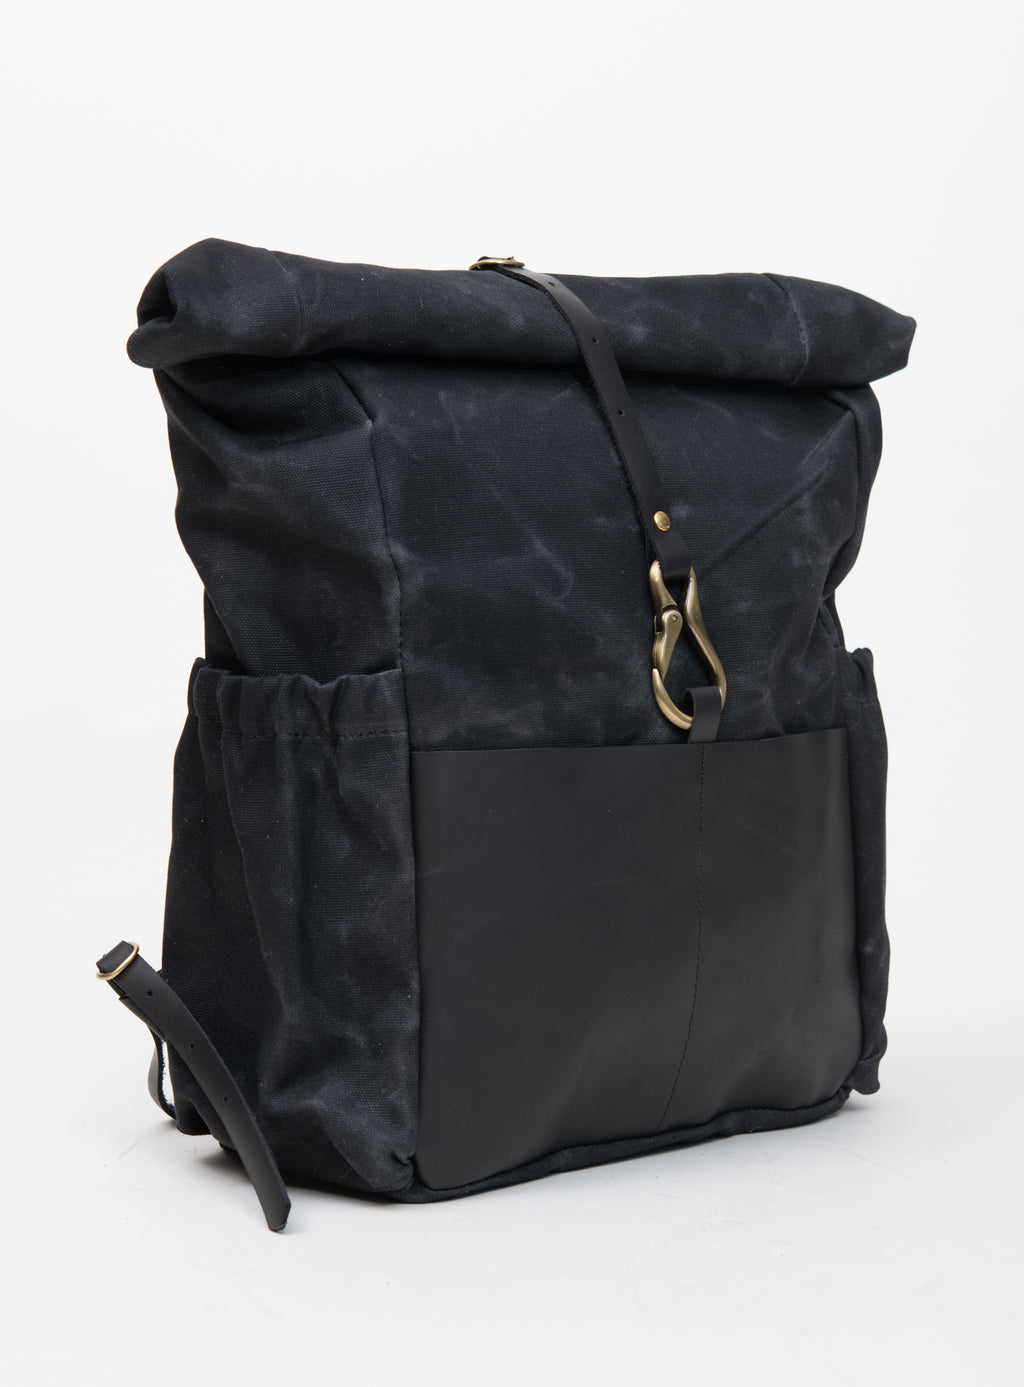 Veinage De Lorimier black leather and waxed canvas roll top backpack